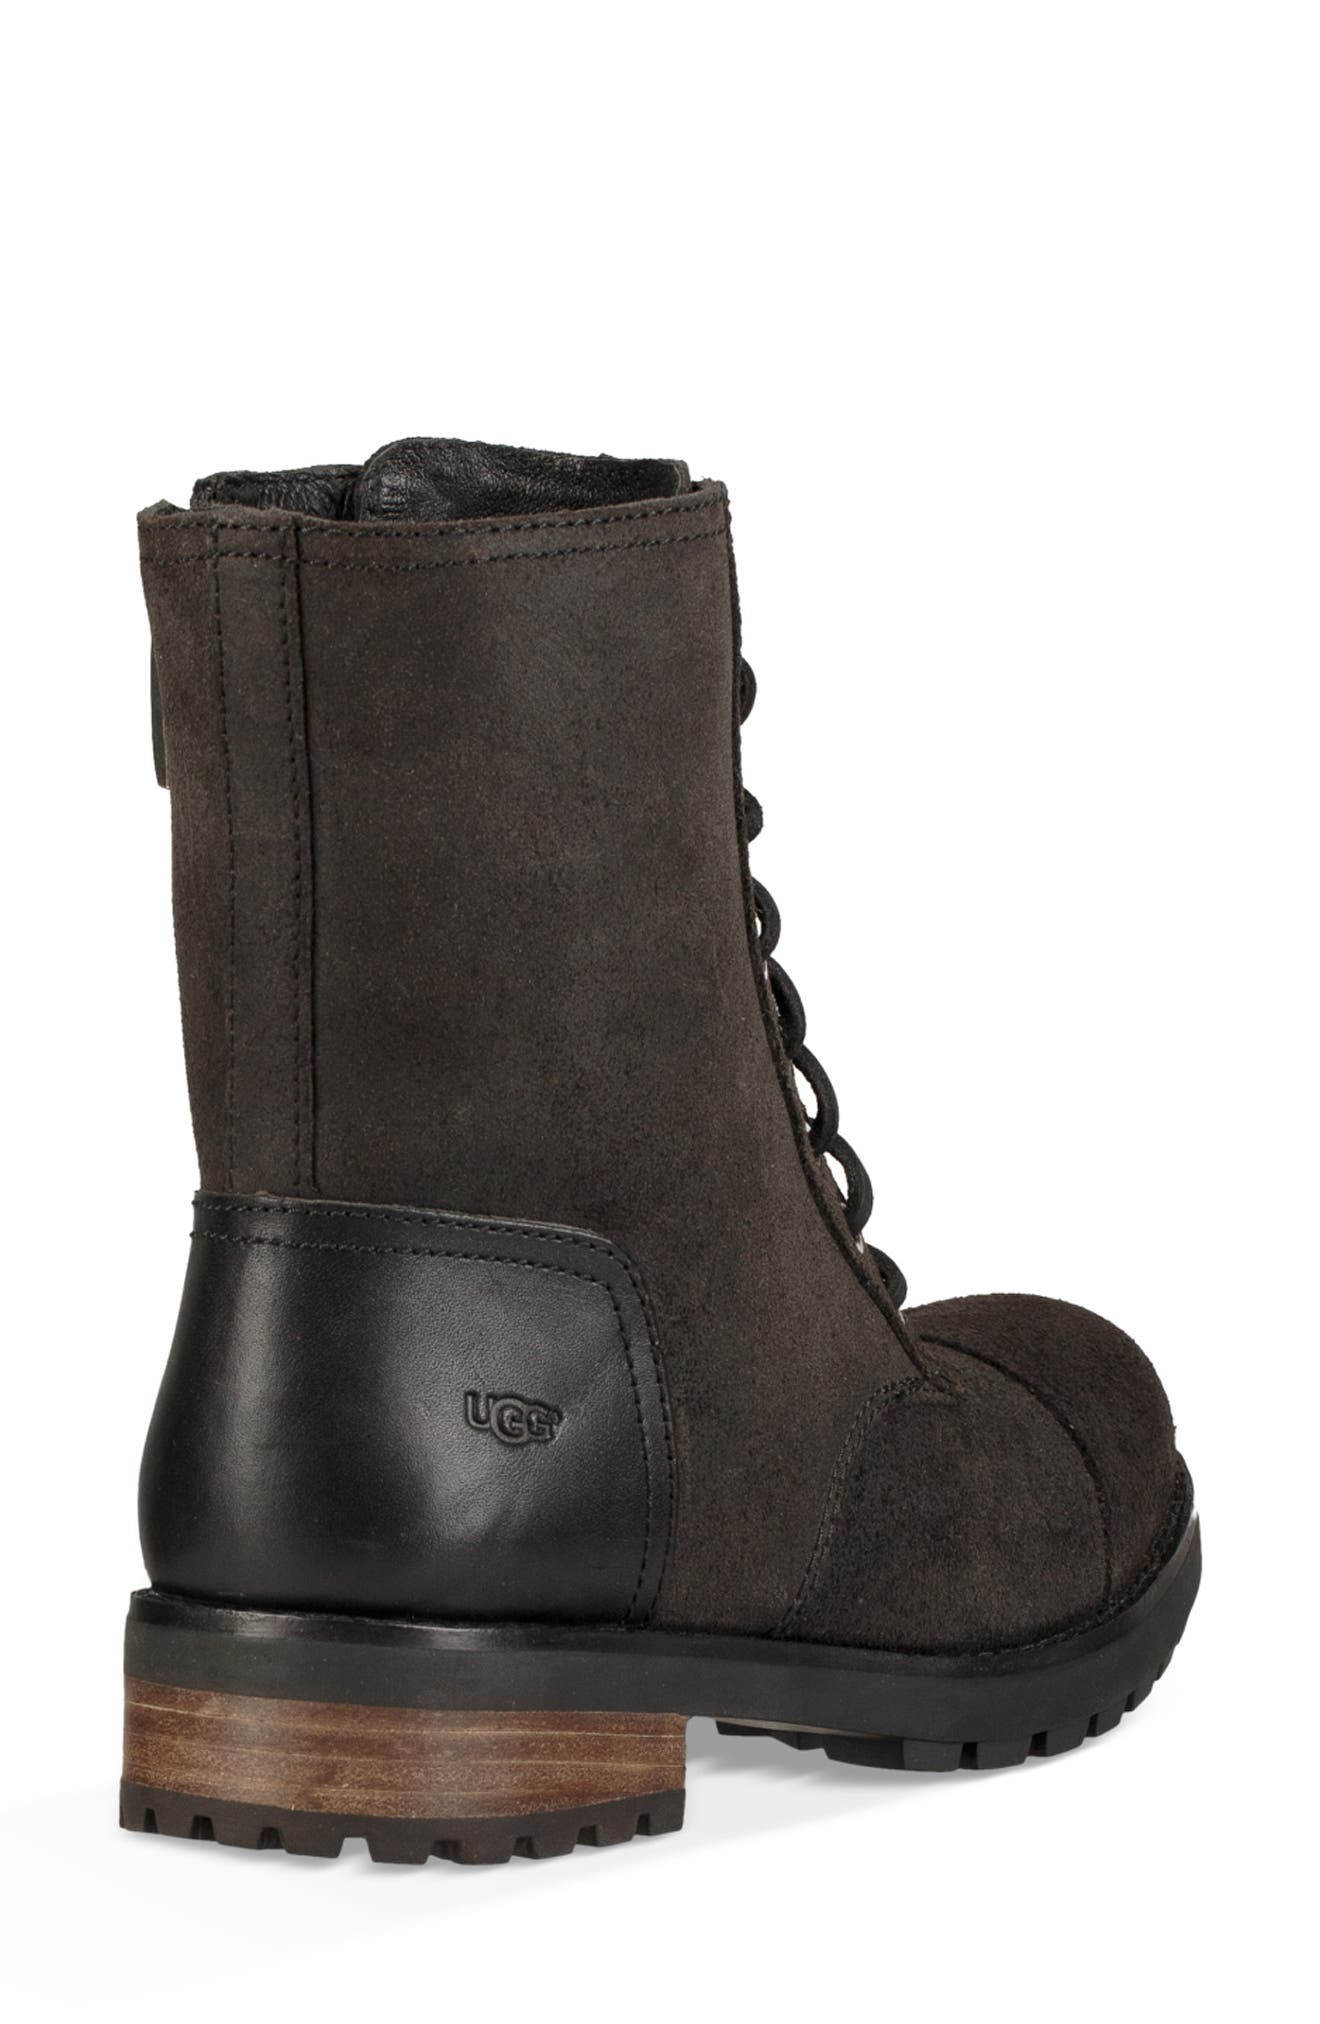 Kilmer II Genuine Shearling Lined Water Resistant Bootie,                             Alternate thumbnail 2, color,                             BLACK LEATHER